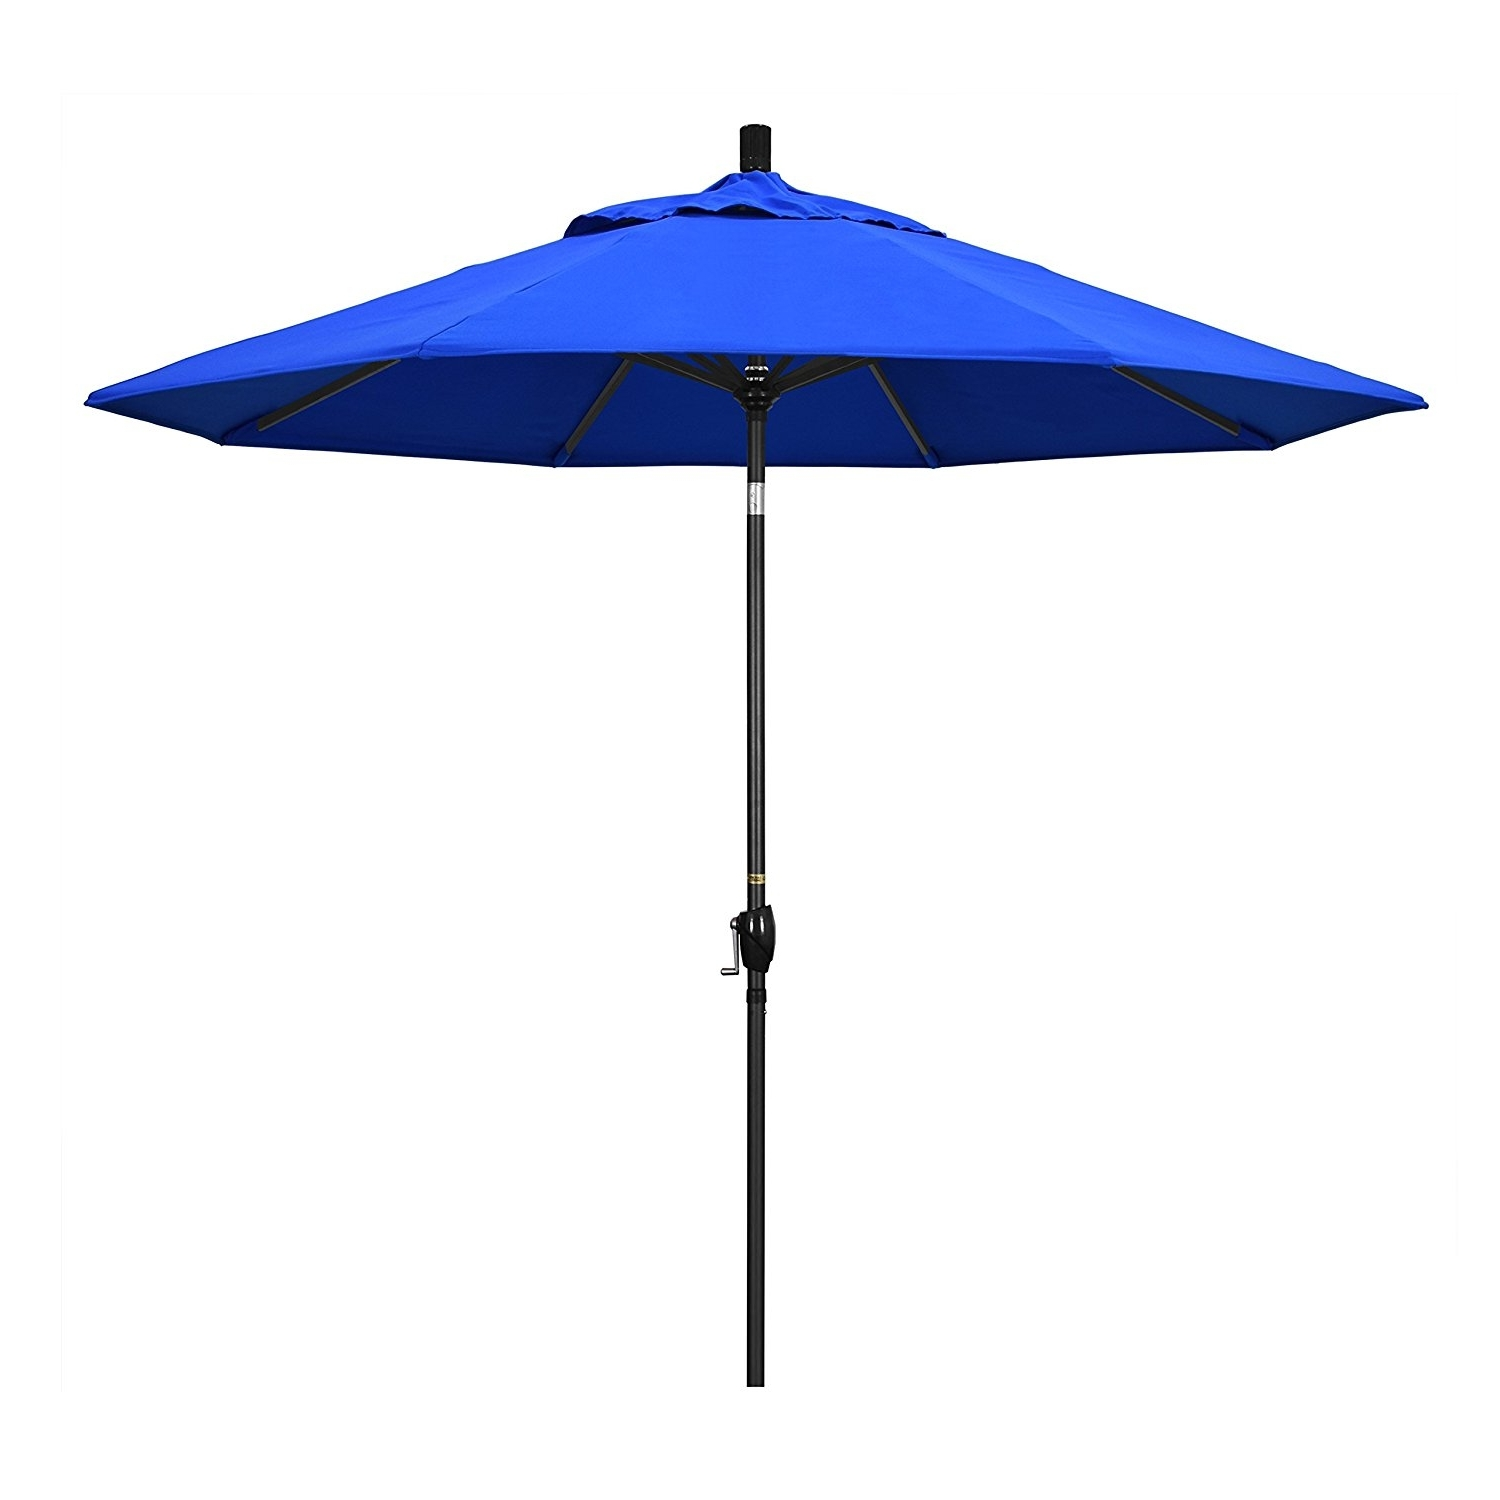 Trendy Patio Umbrellas With Sunbrella Fabric In Best Sunbrella Umbrellas (View 20 of 20)